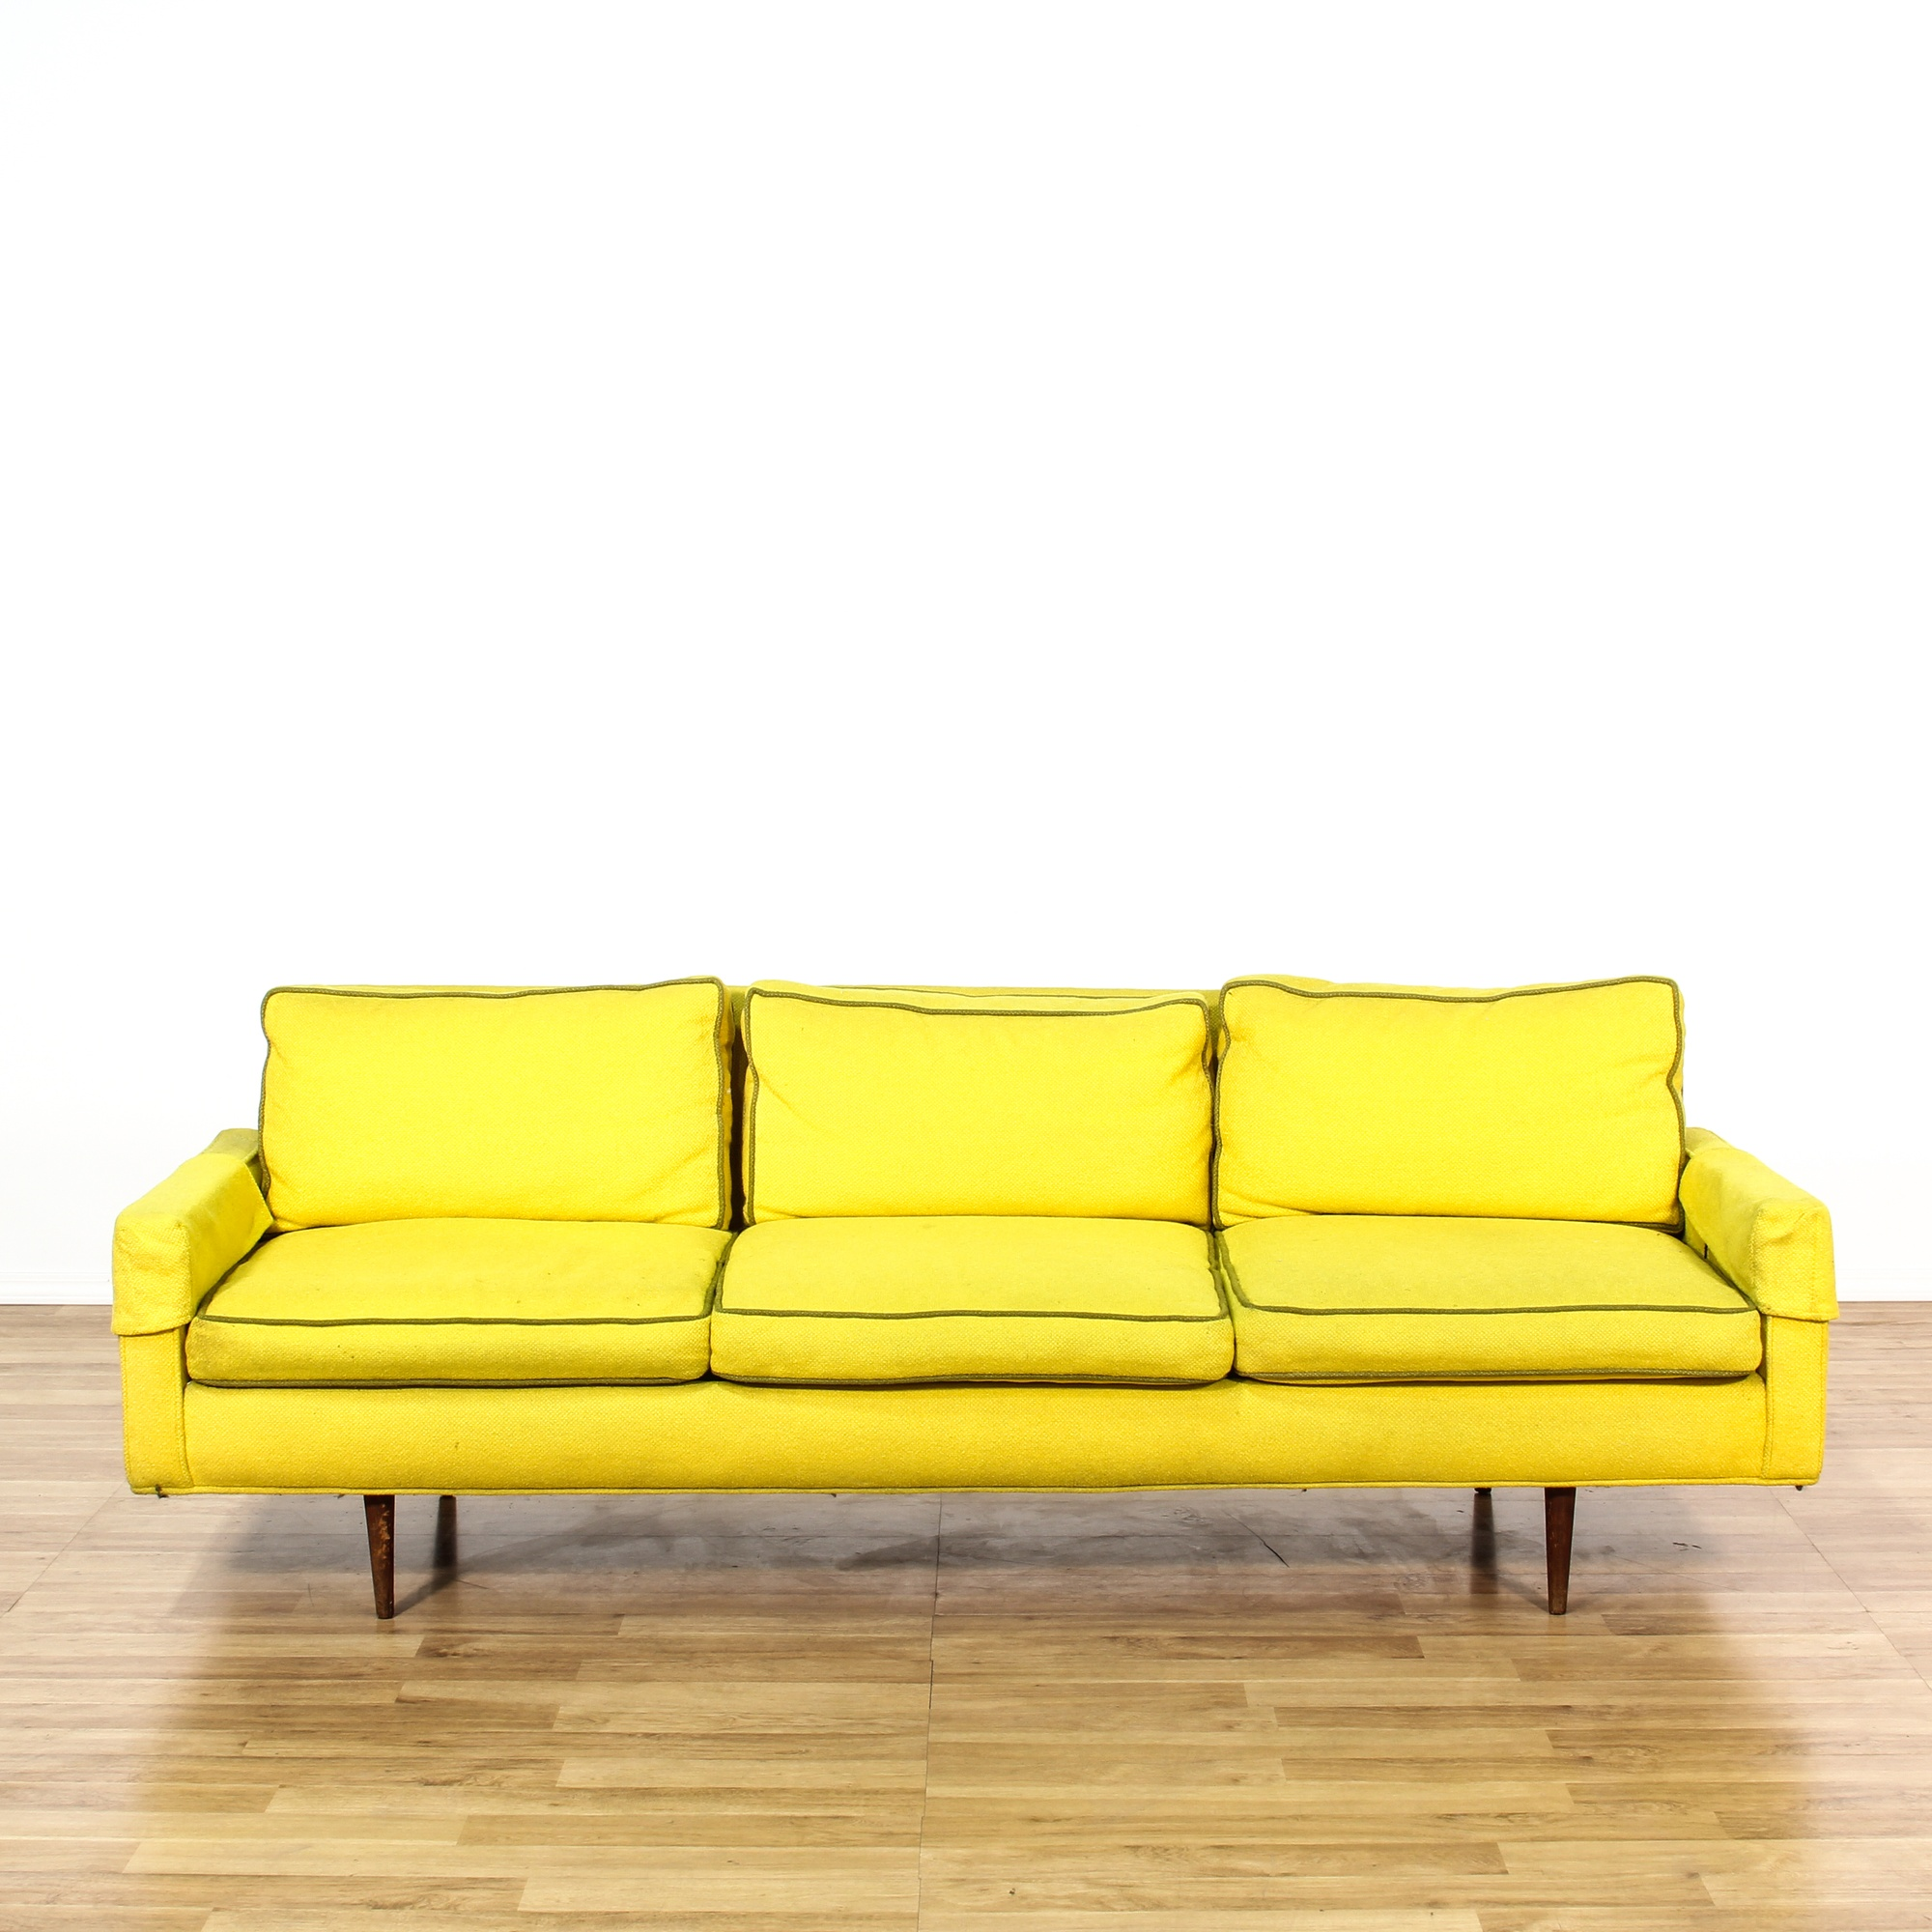 Bright Yellow Mid Century Modern Sofa Loveseat Vintage Furniture San Diego Los Angeles